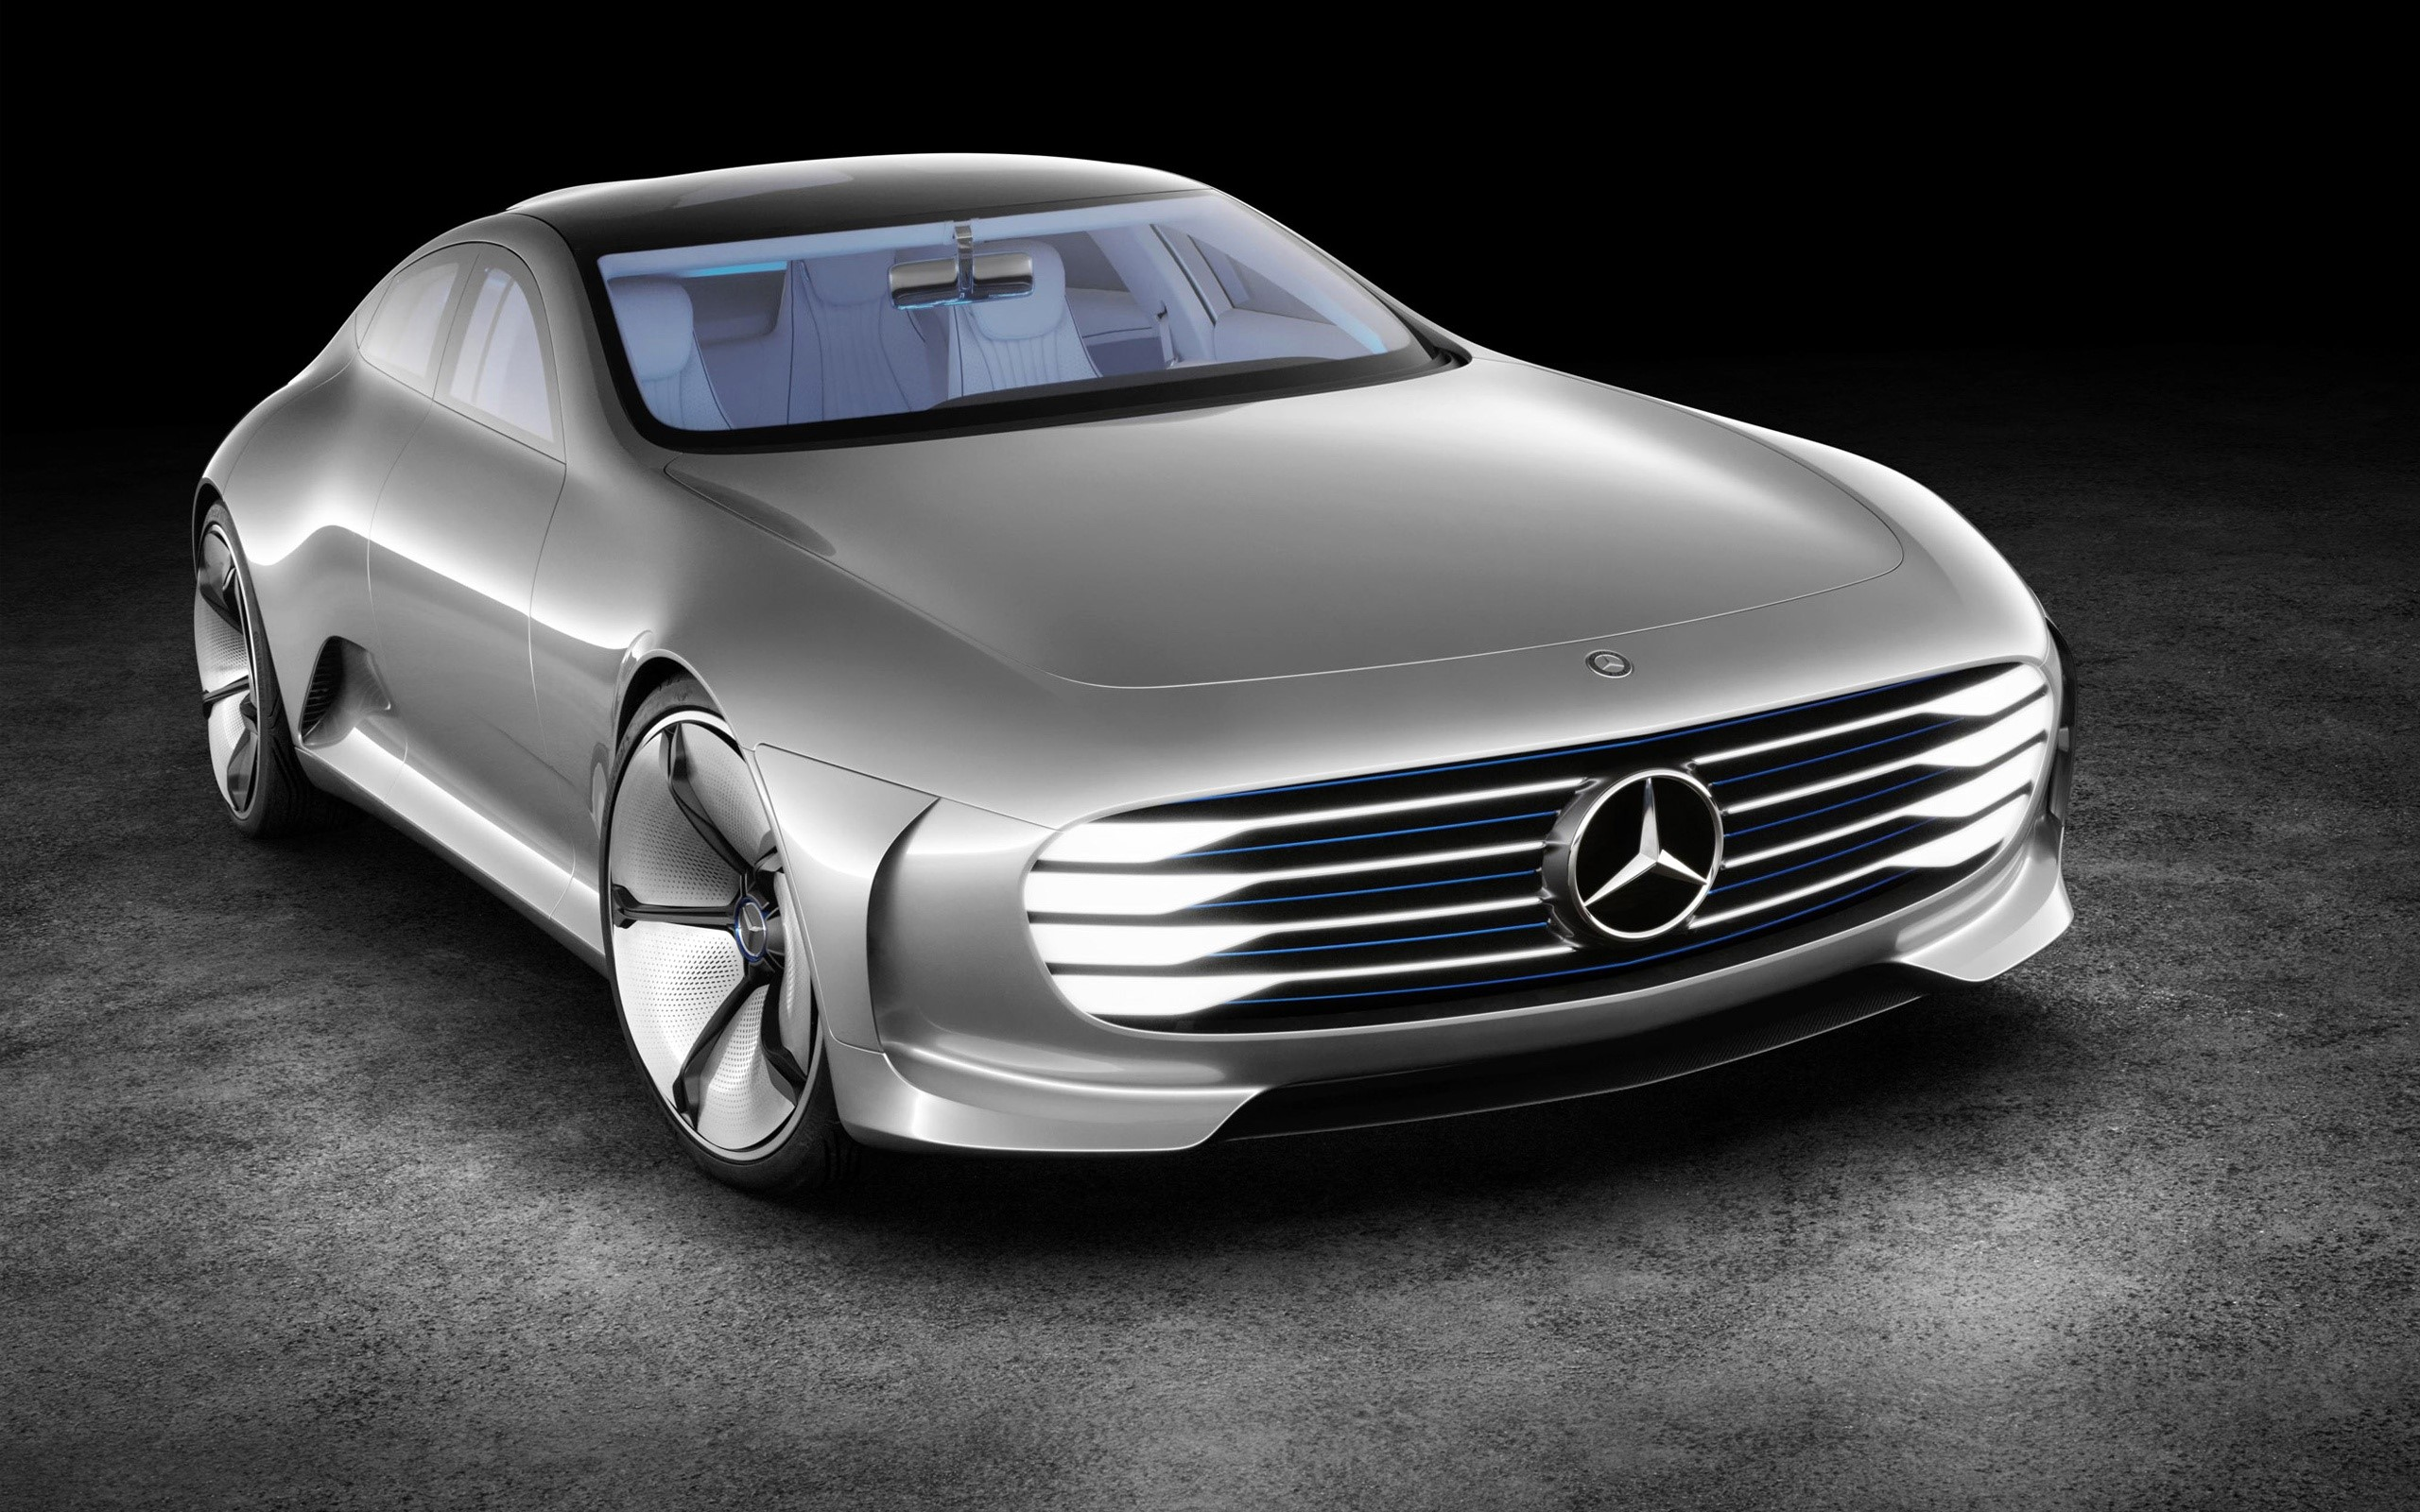 Wallpaper Mercedes Benz Concept IAA